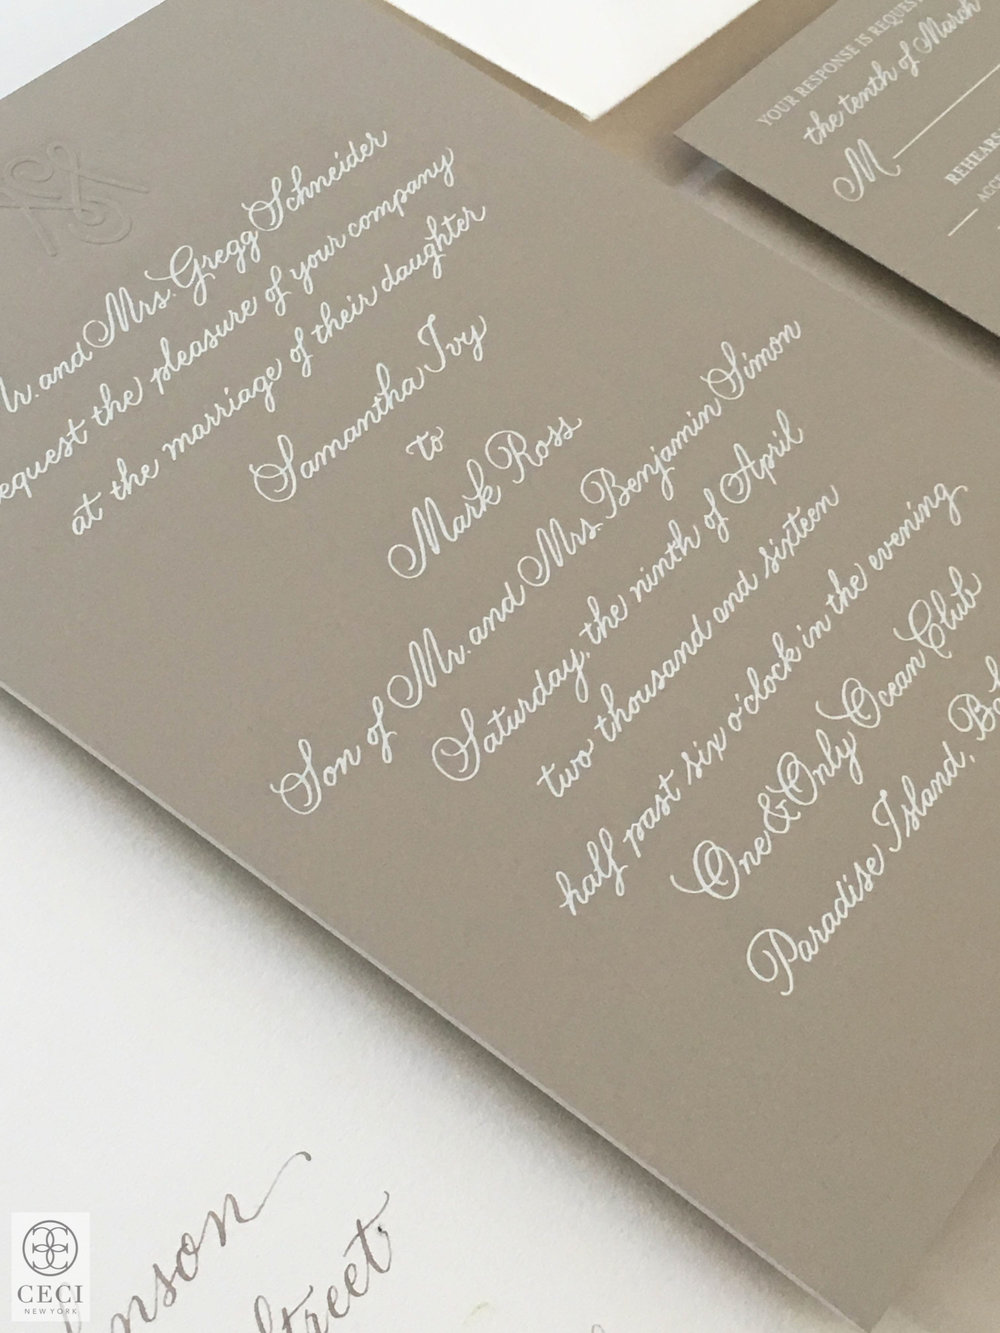 Ceci_New_York_Ceci_Style_Ceci_Johnson_Luxury_Lifestyle_Paradise_Island_Bahamas_Wedding_Engraved_Inspiration_Design_Custom_Couture_Personalized_Invitations_--6.jpg